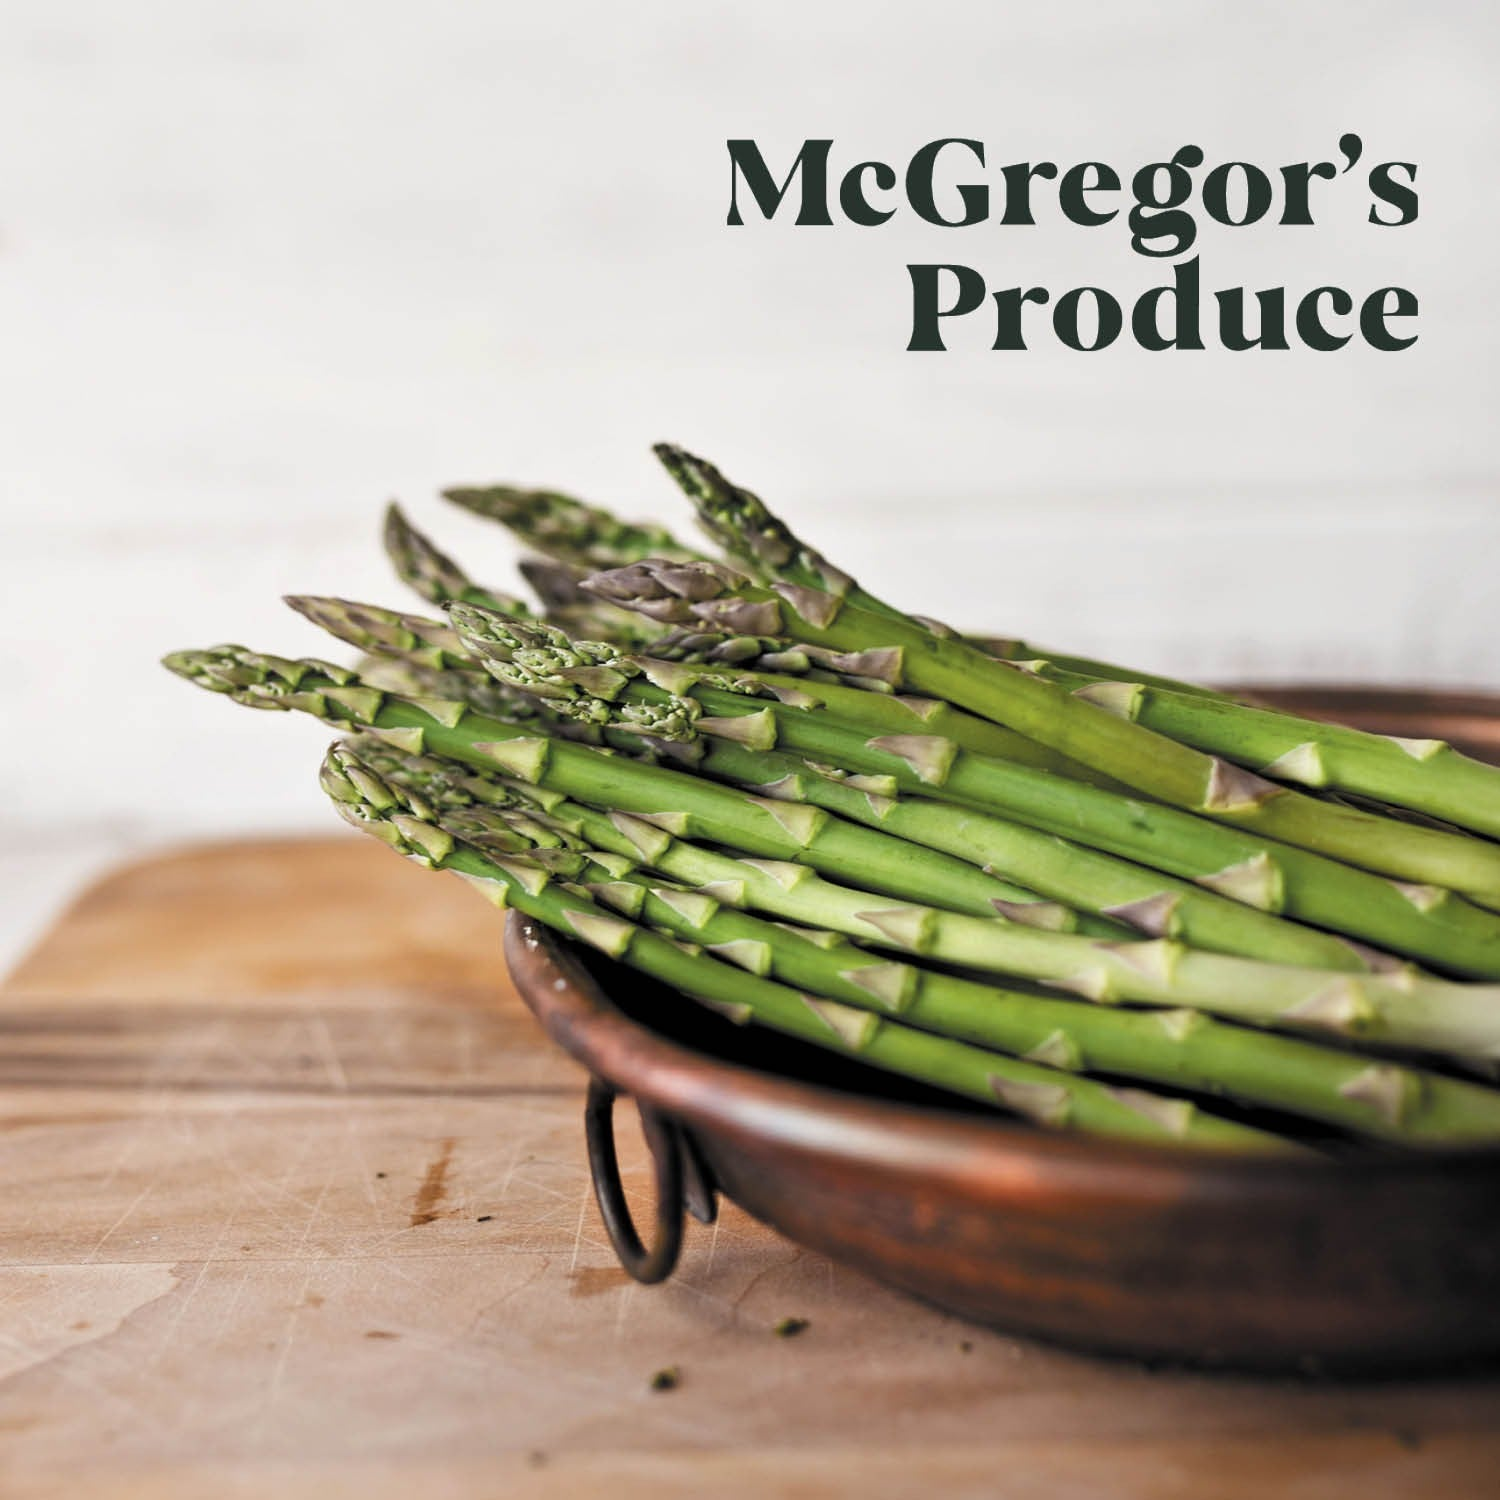 McGregor's Produce - Home,